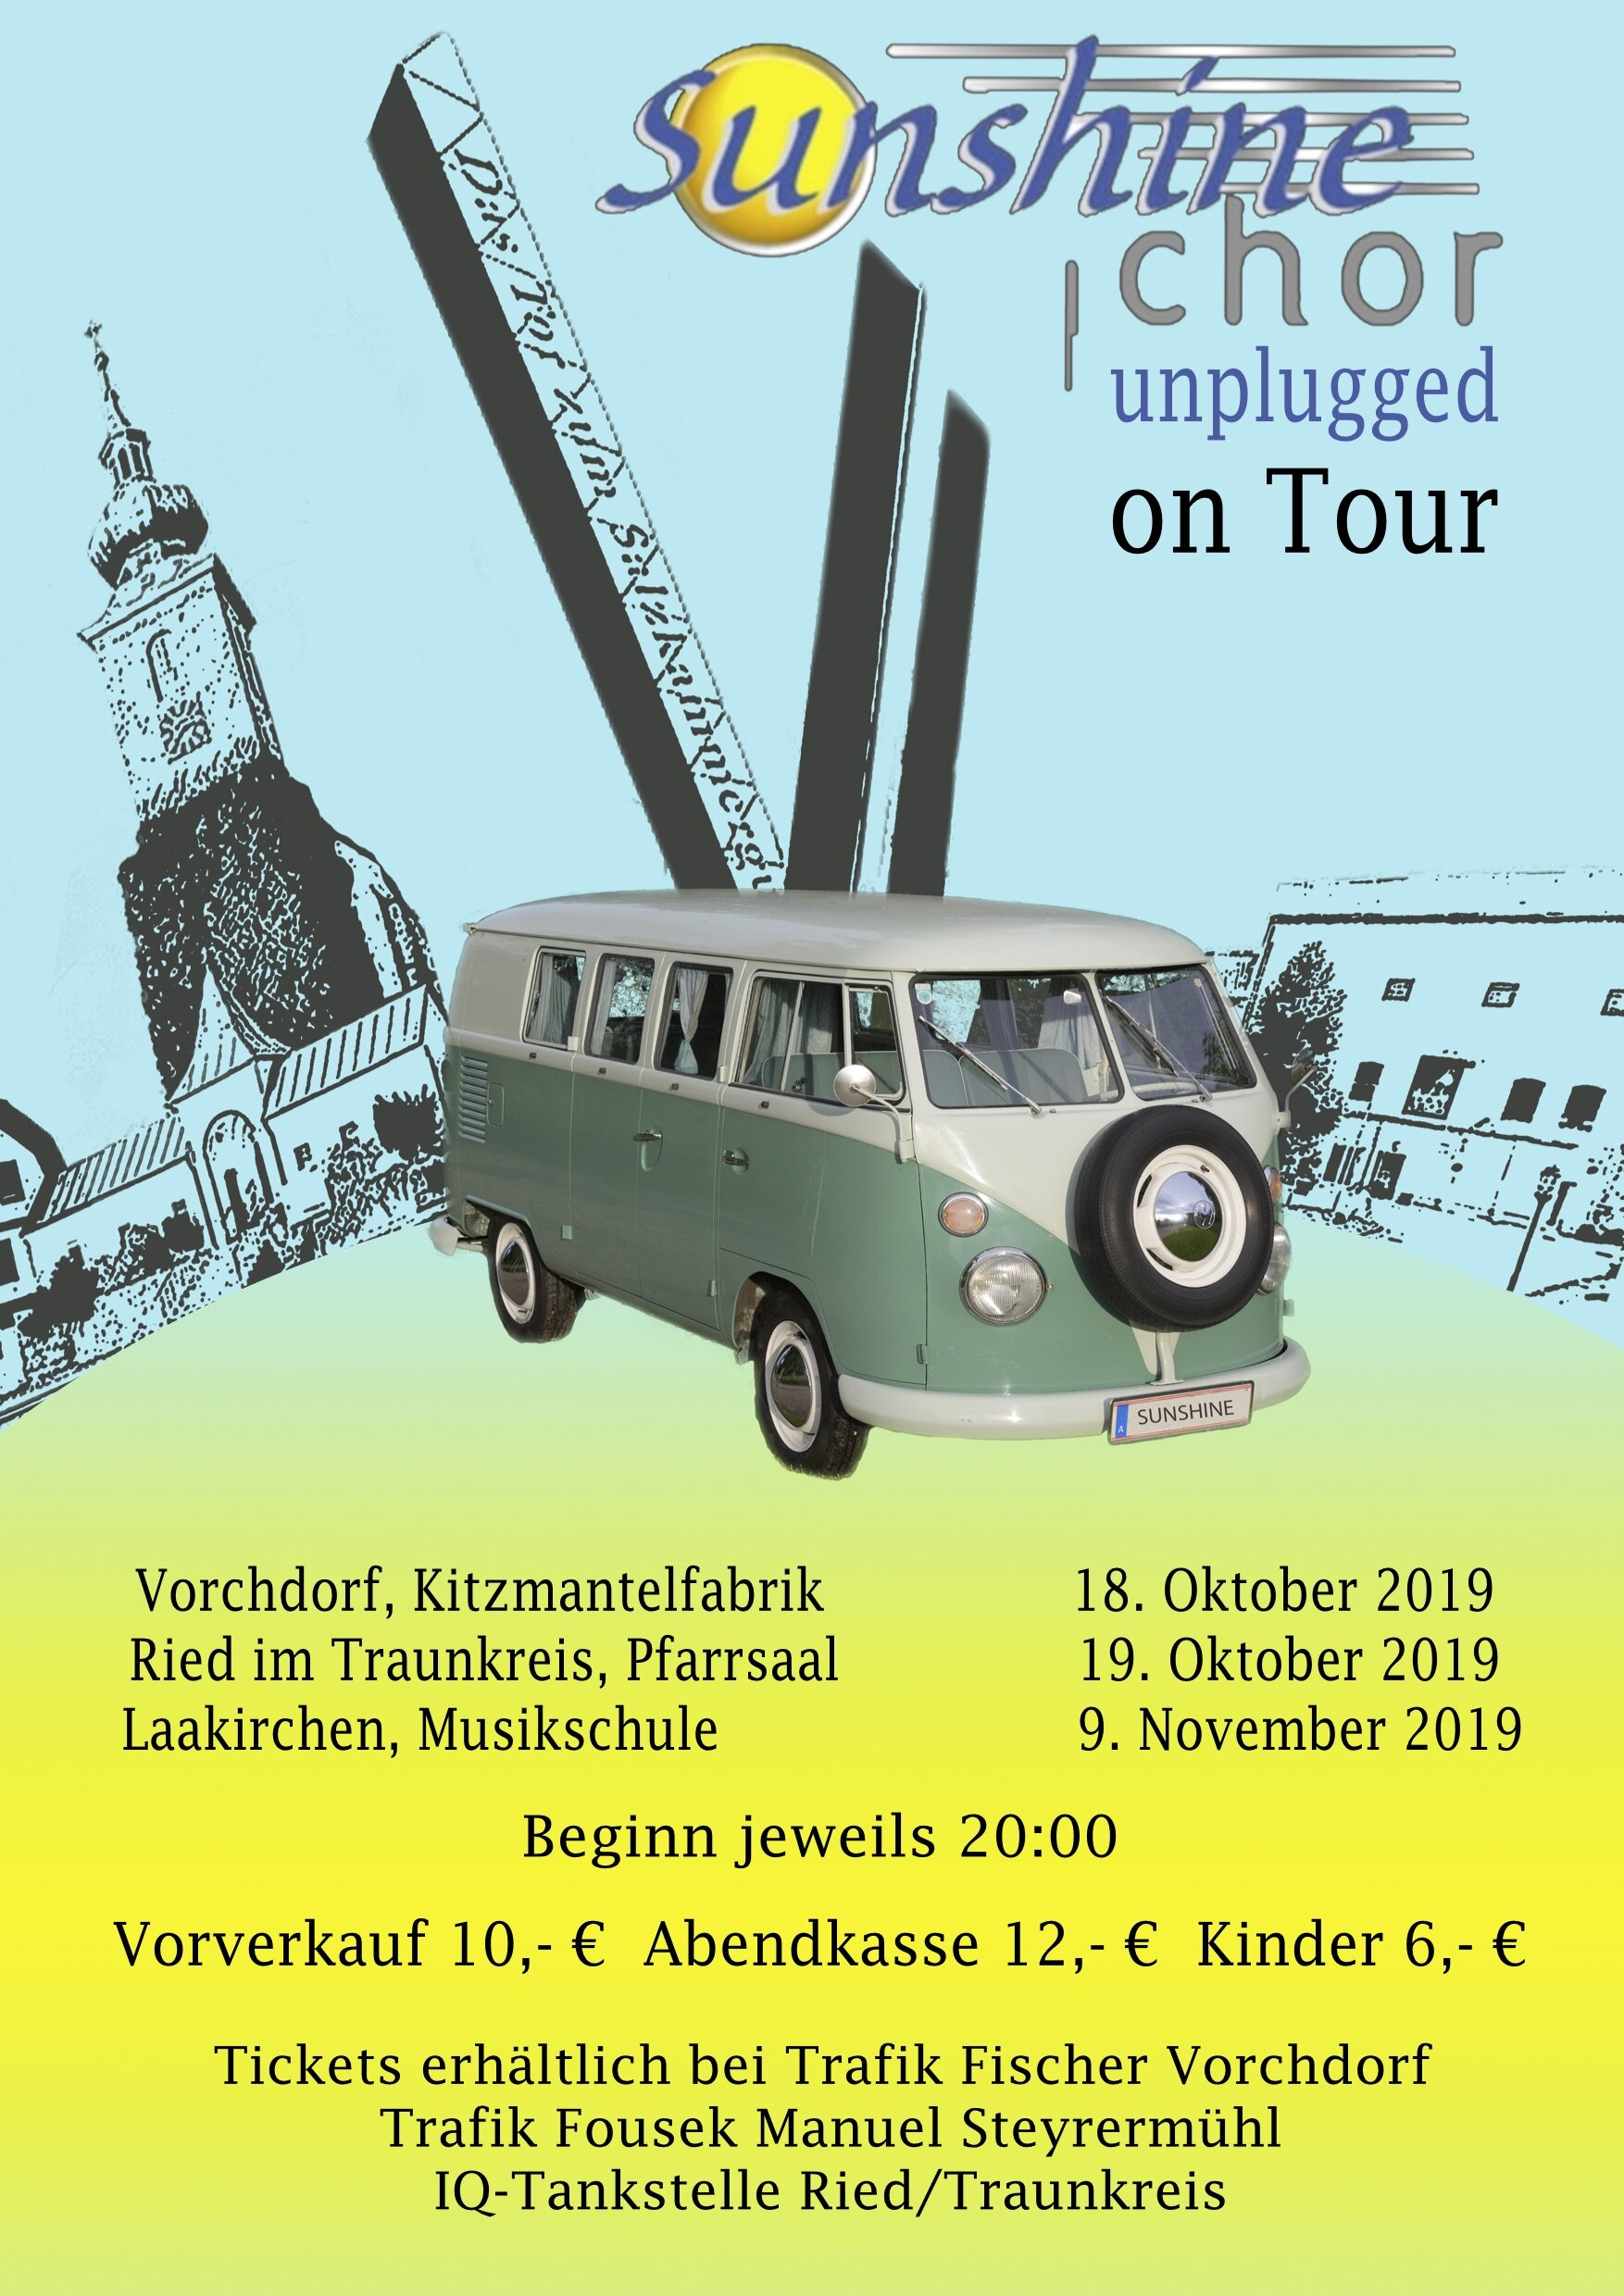 Unplugged-On Tour_Plakat fin.jpg